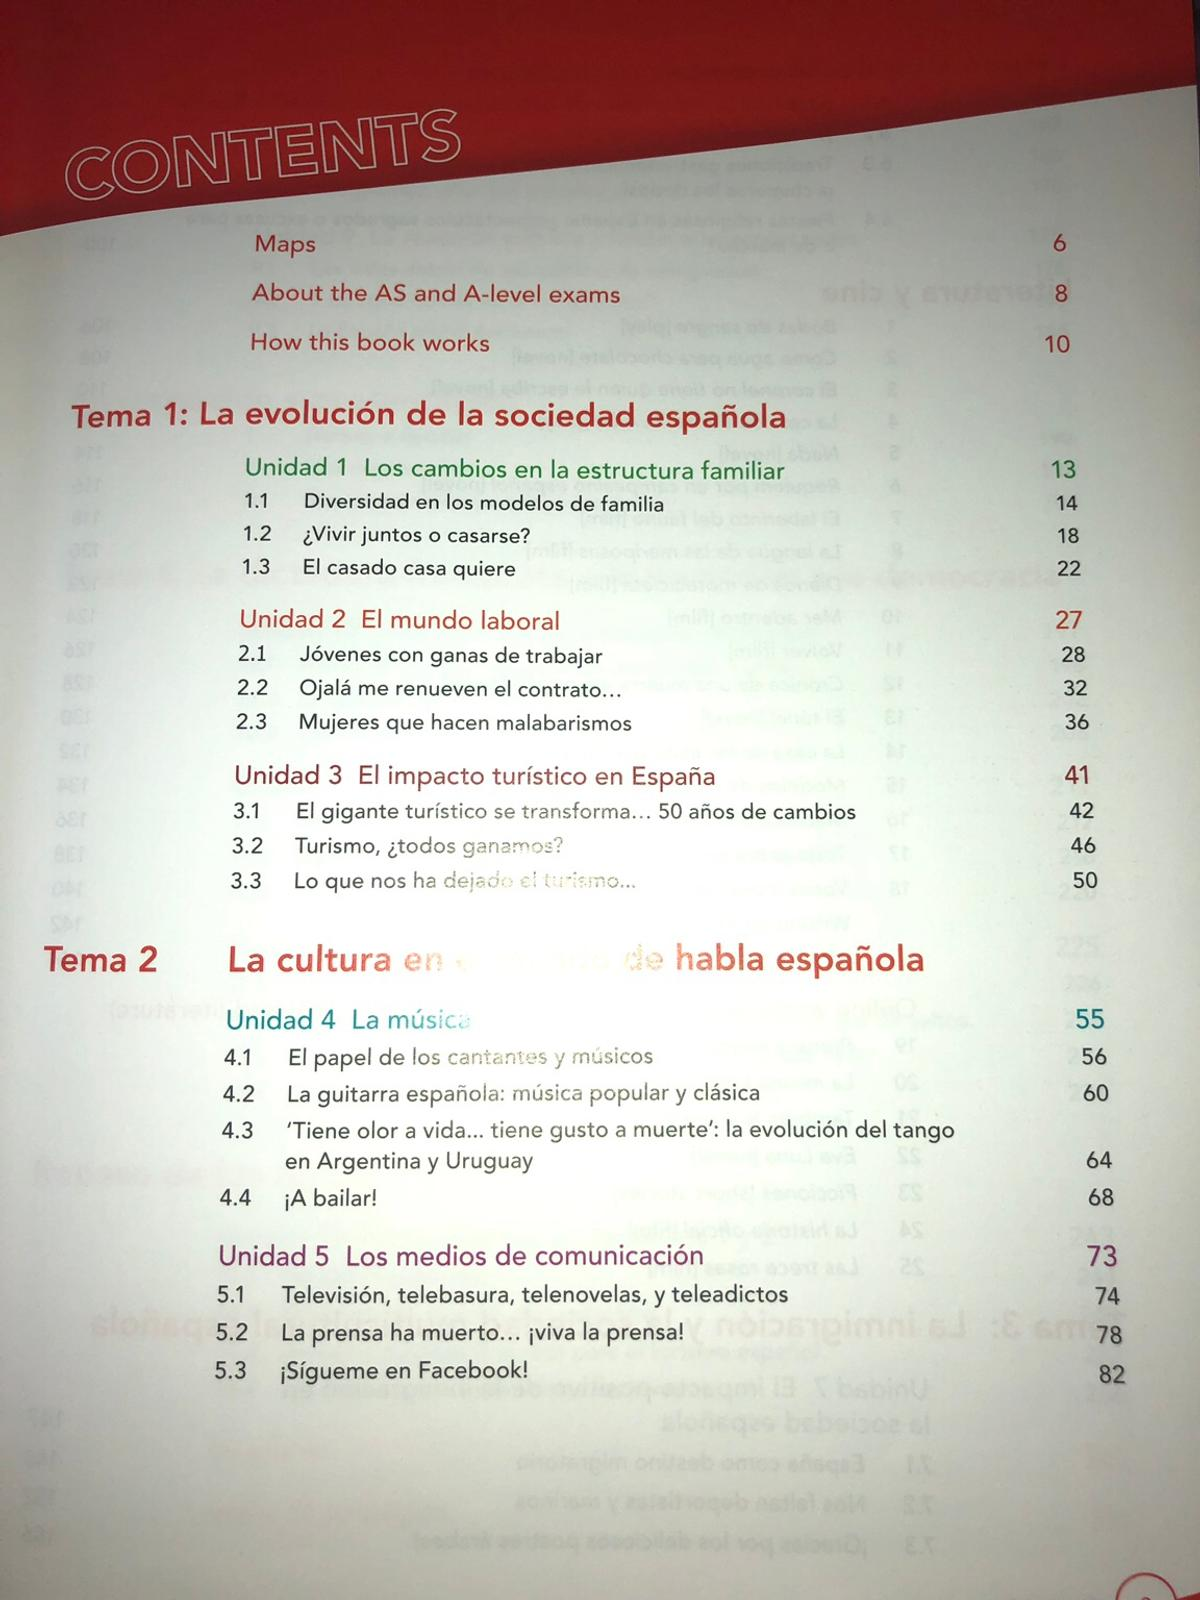 Edexcel A Level Spanish Textbook In Cr0 London For 13 00